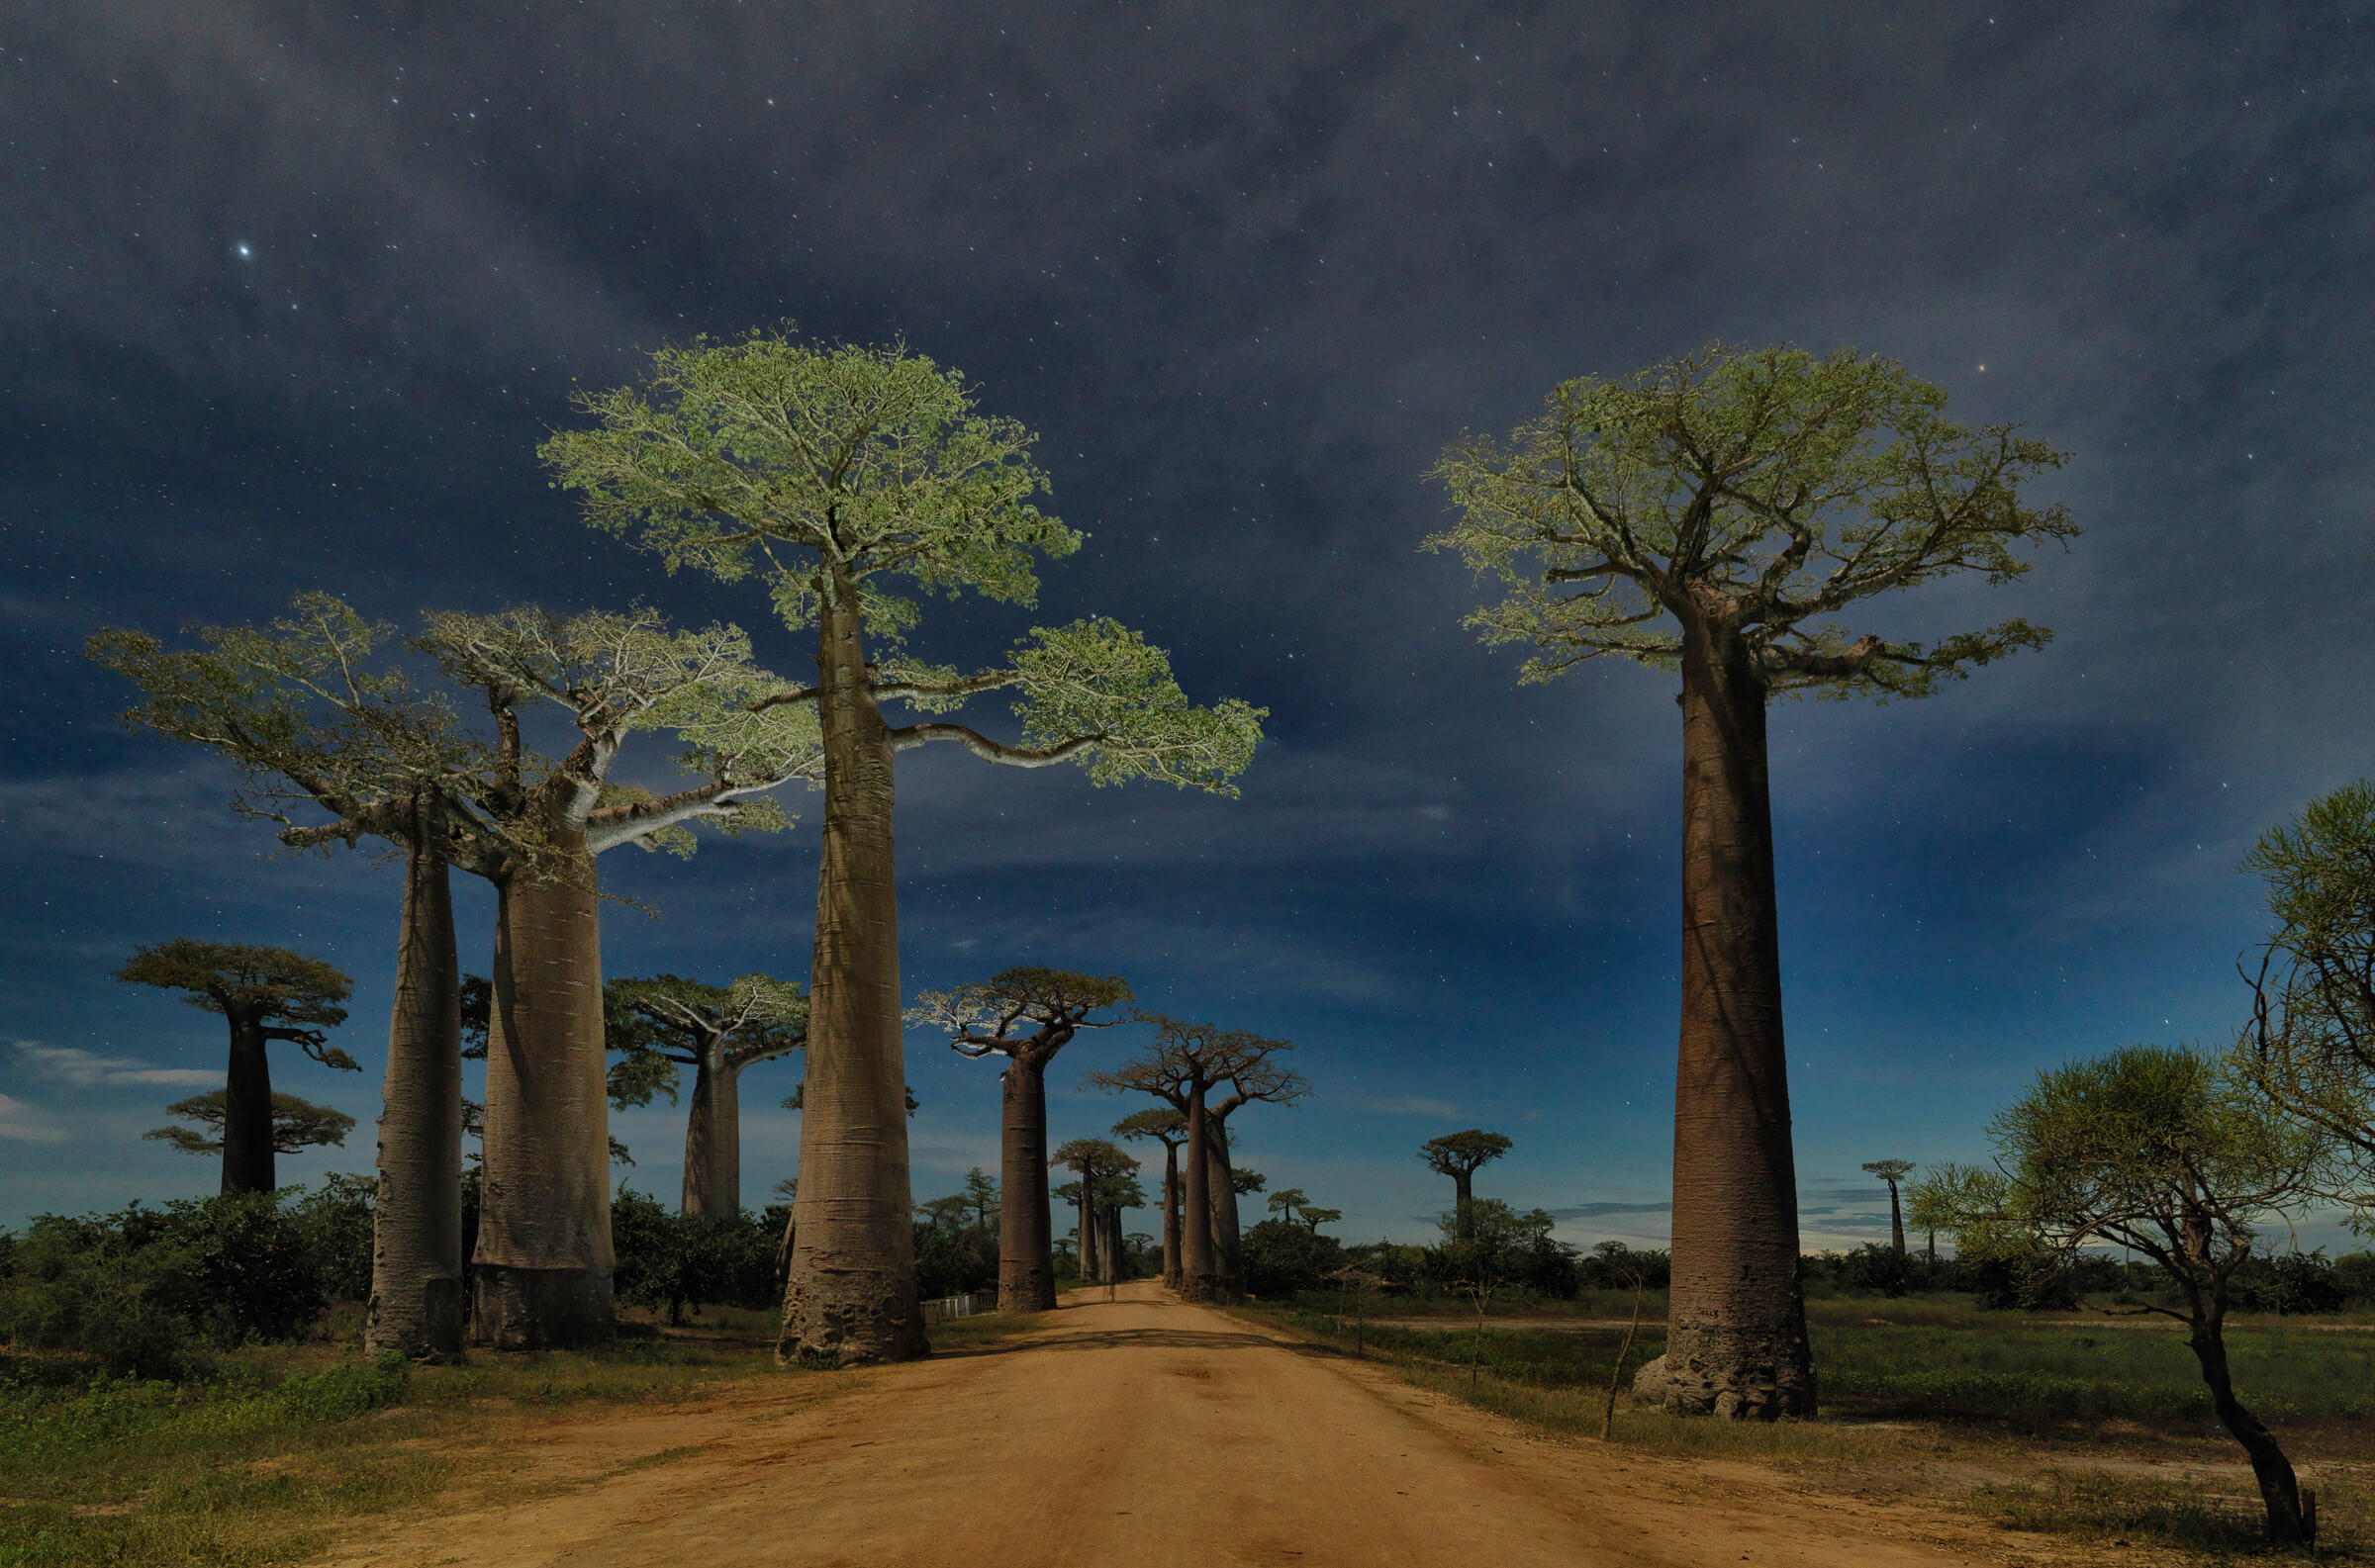 Adrian Houston london luxury photographer- RICHARD BRANSON GRANDIDIER'S BAOBAB ALLEY